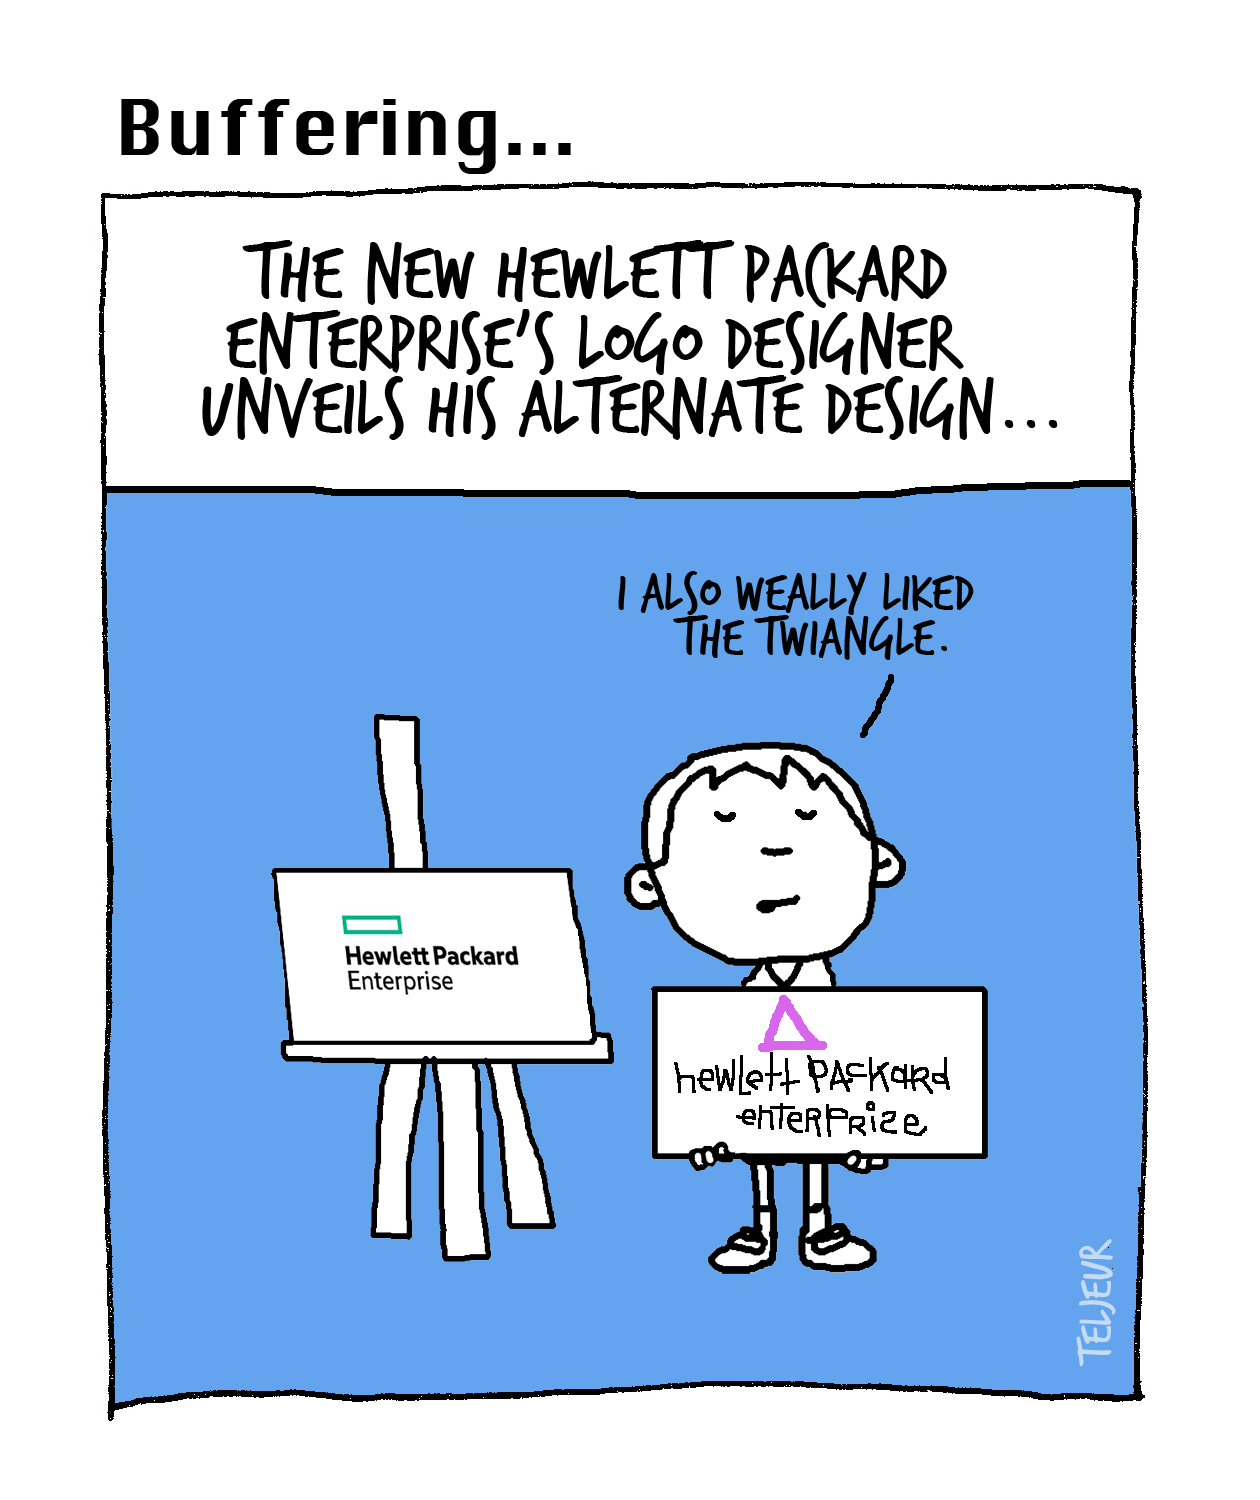 Buffering - HP Enterprise logo